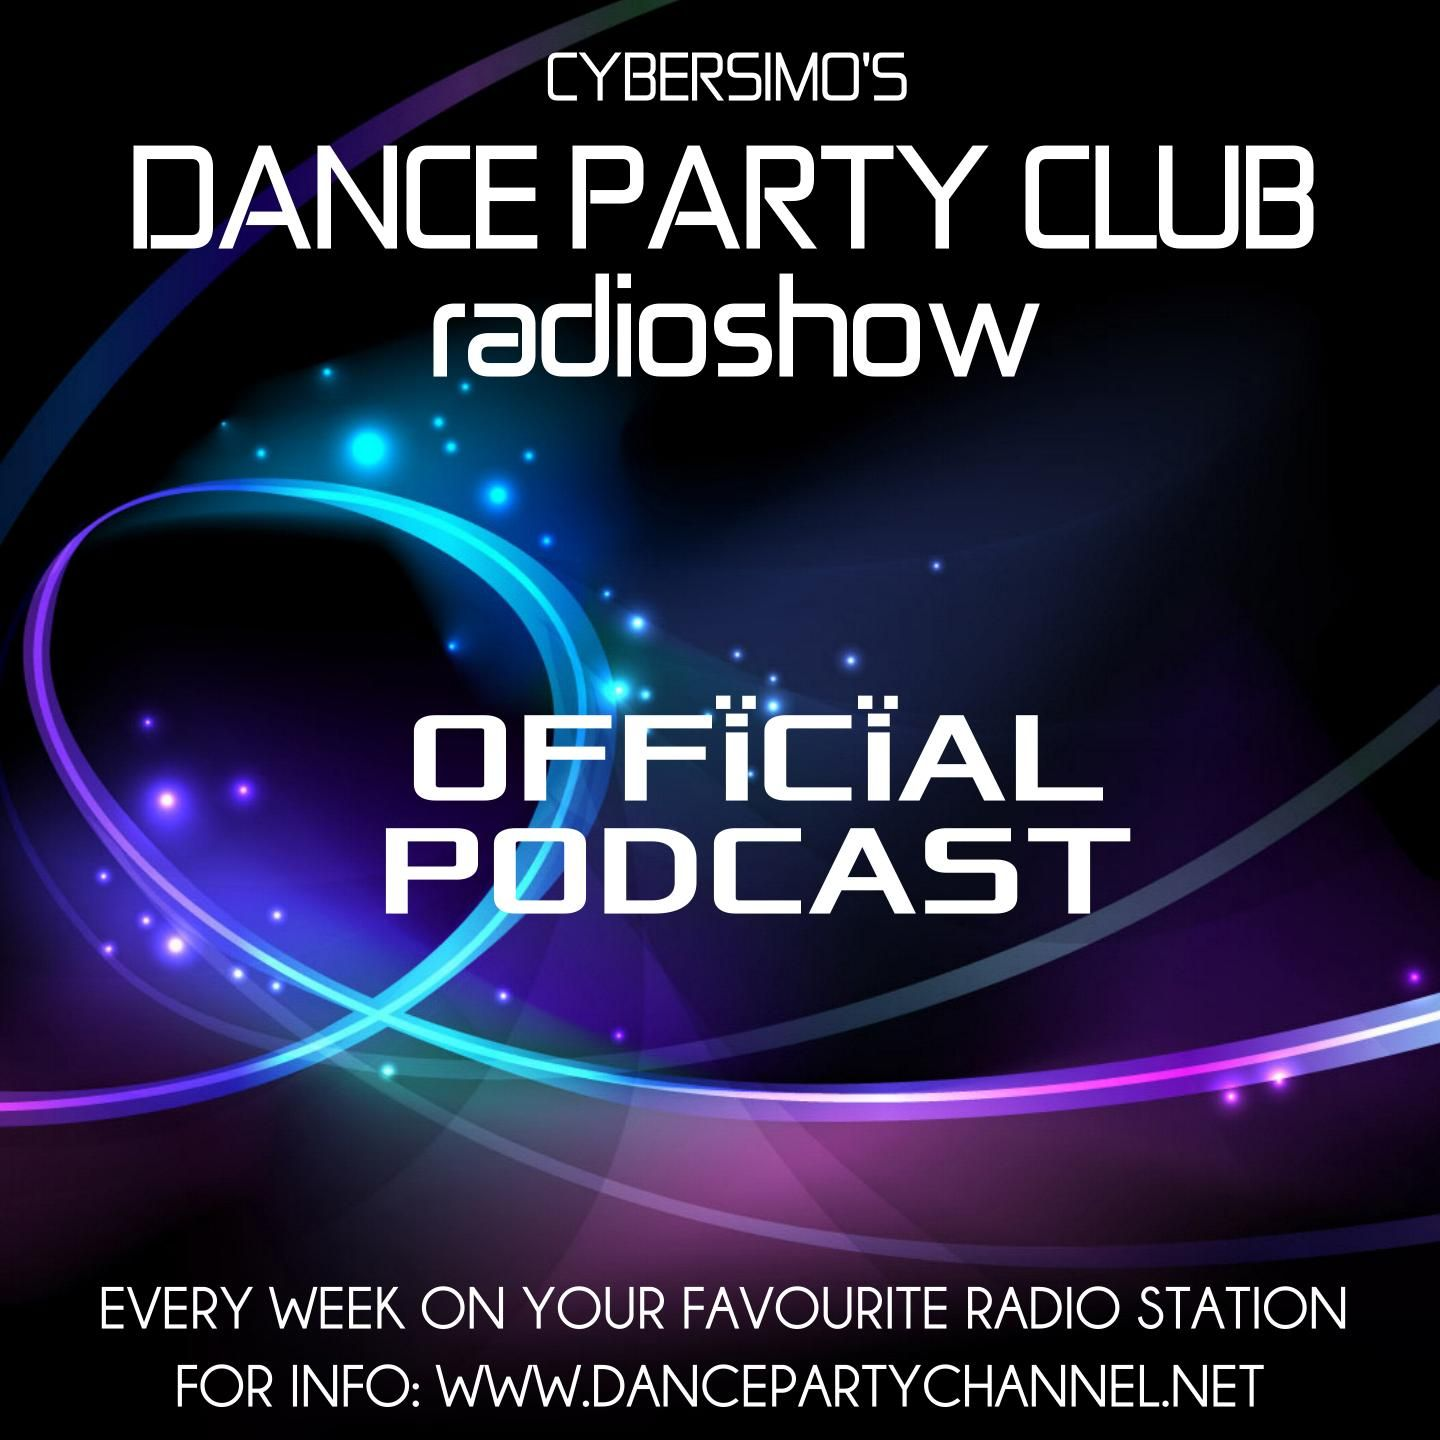 DANCE PARTY CLUB PODCAST